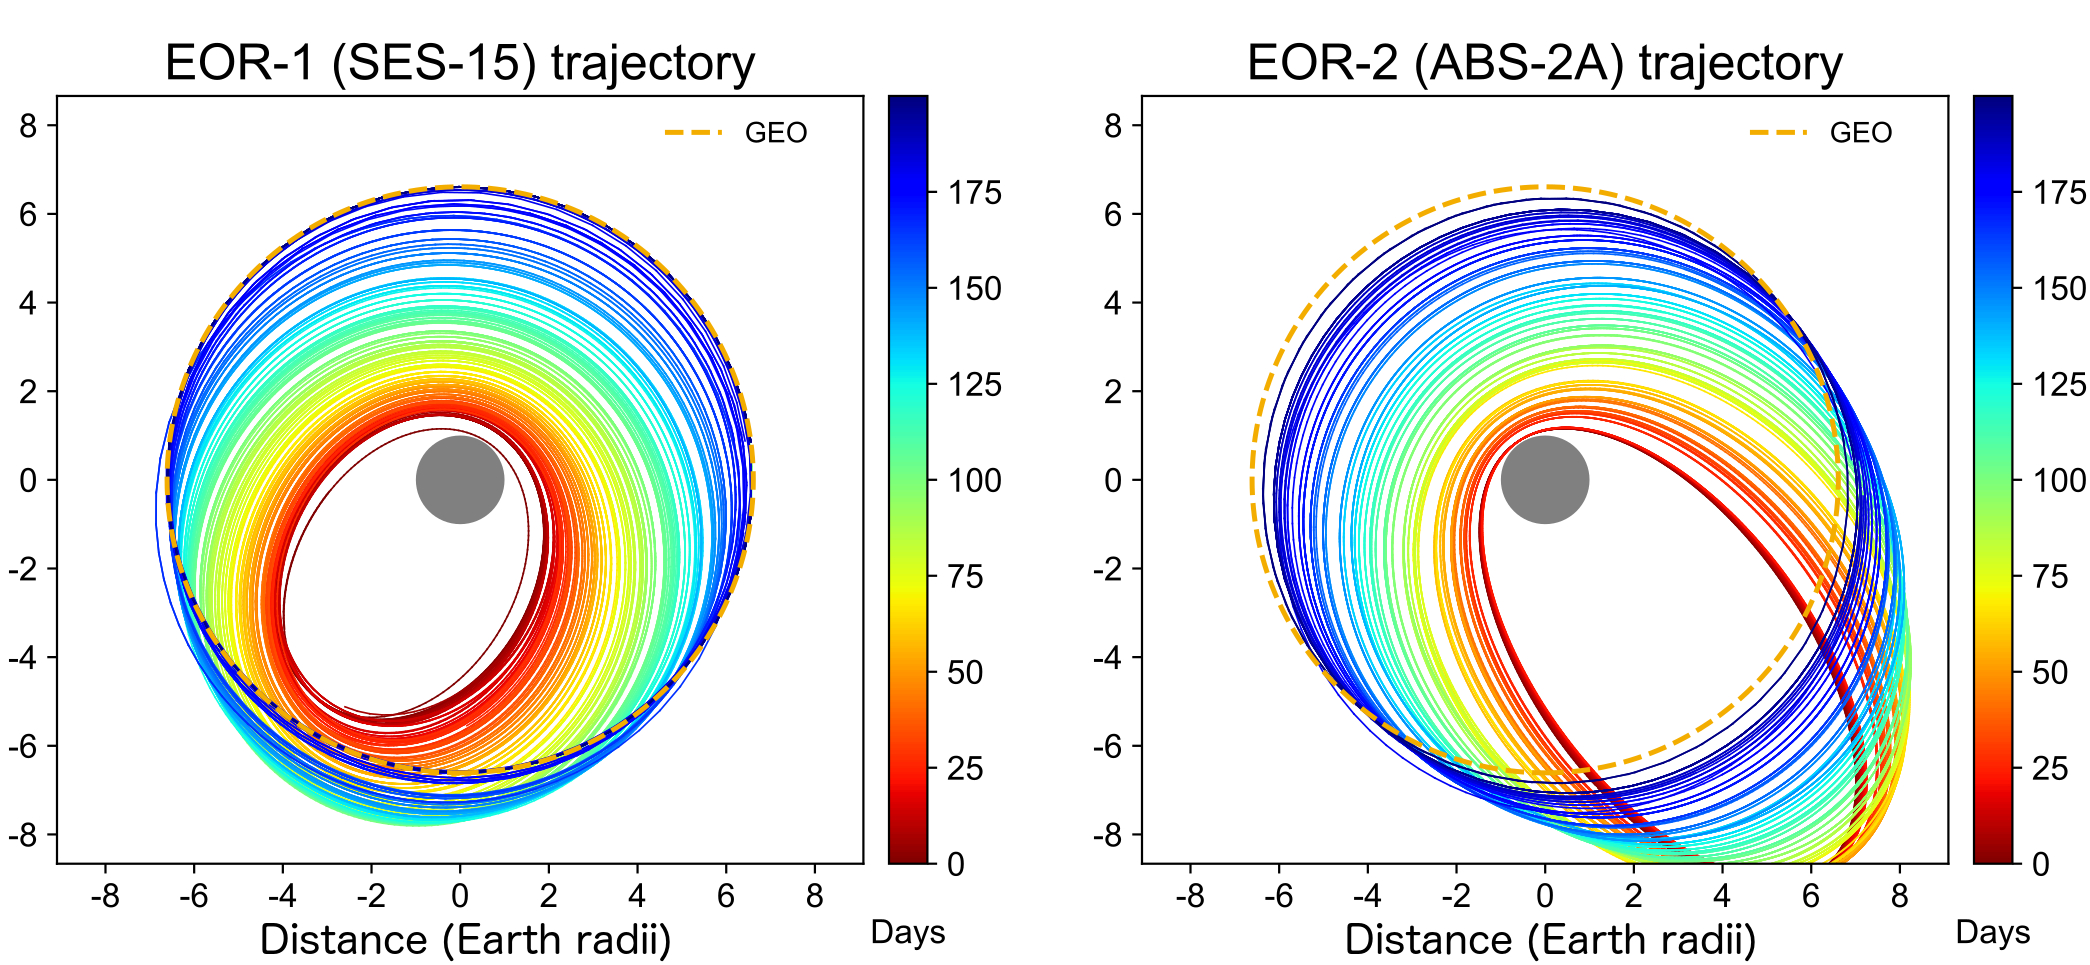 Trajectories of two satellites (SES-15 and ABS-2A) undergoing electric orbit raising. The colour coding indicates the number of days after launch. Geostationary orbit is indicated by a yellow dashed line. Credit: Lozinski et al., 2019